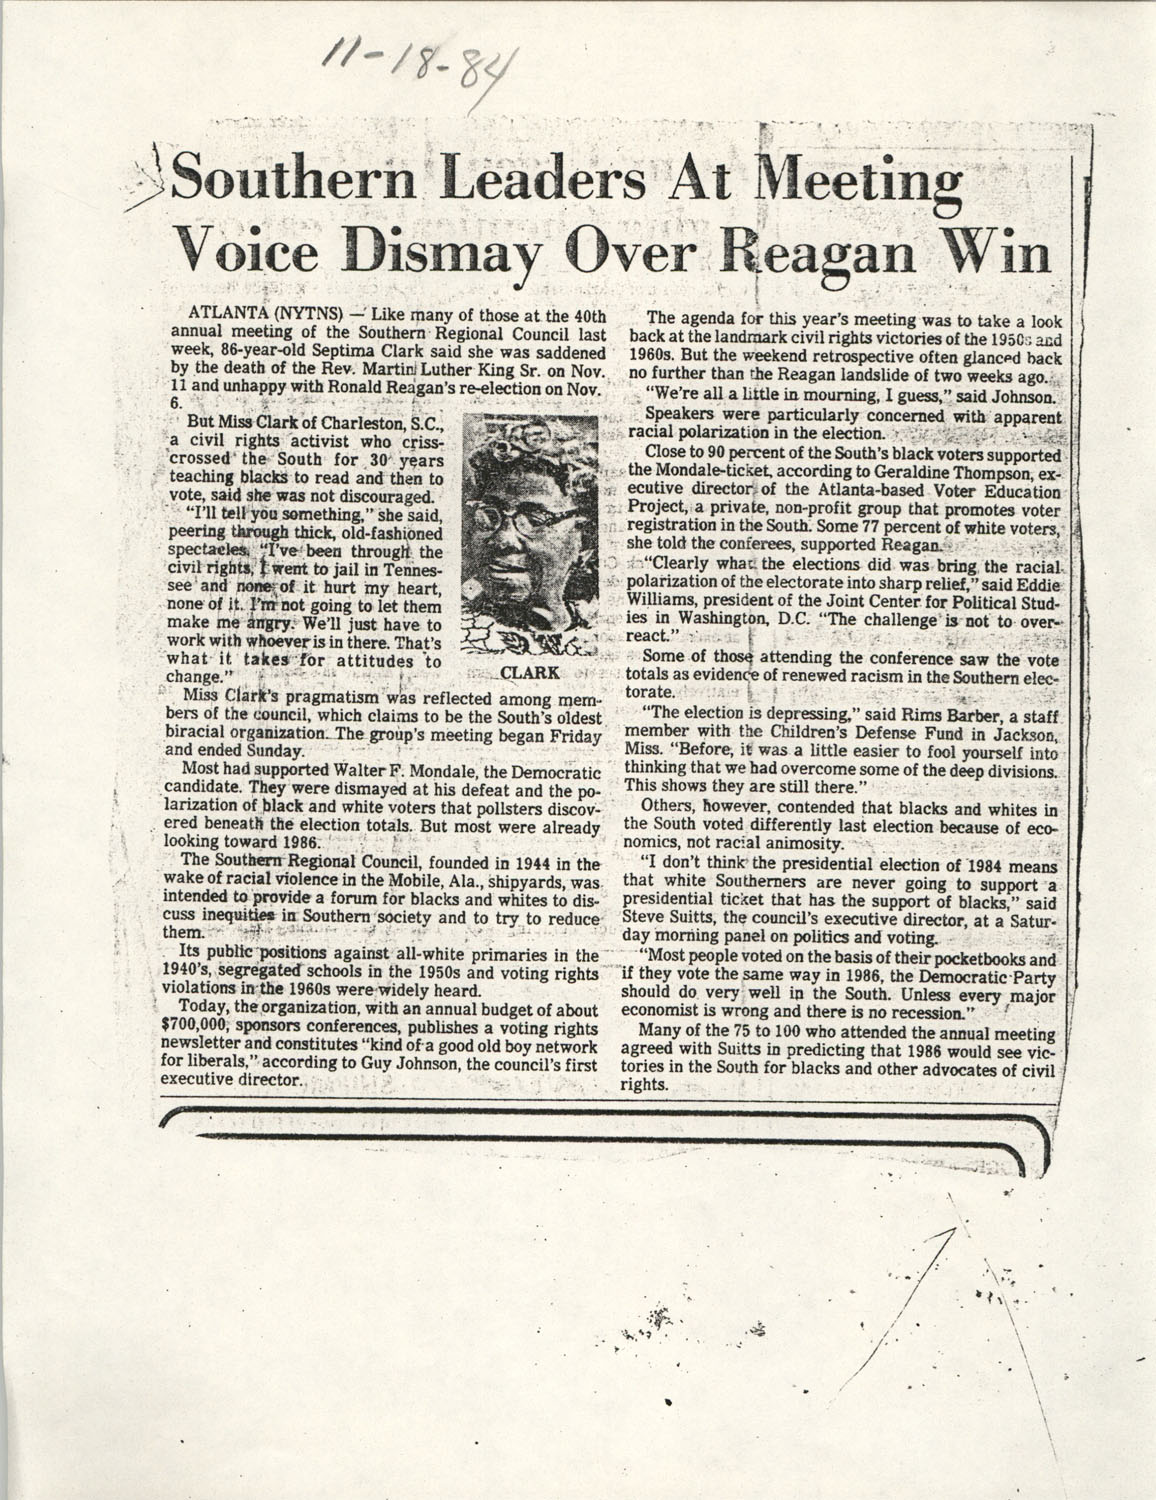 Newspaper Article, November 18, 1984